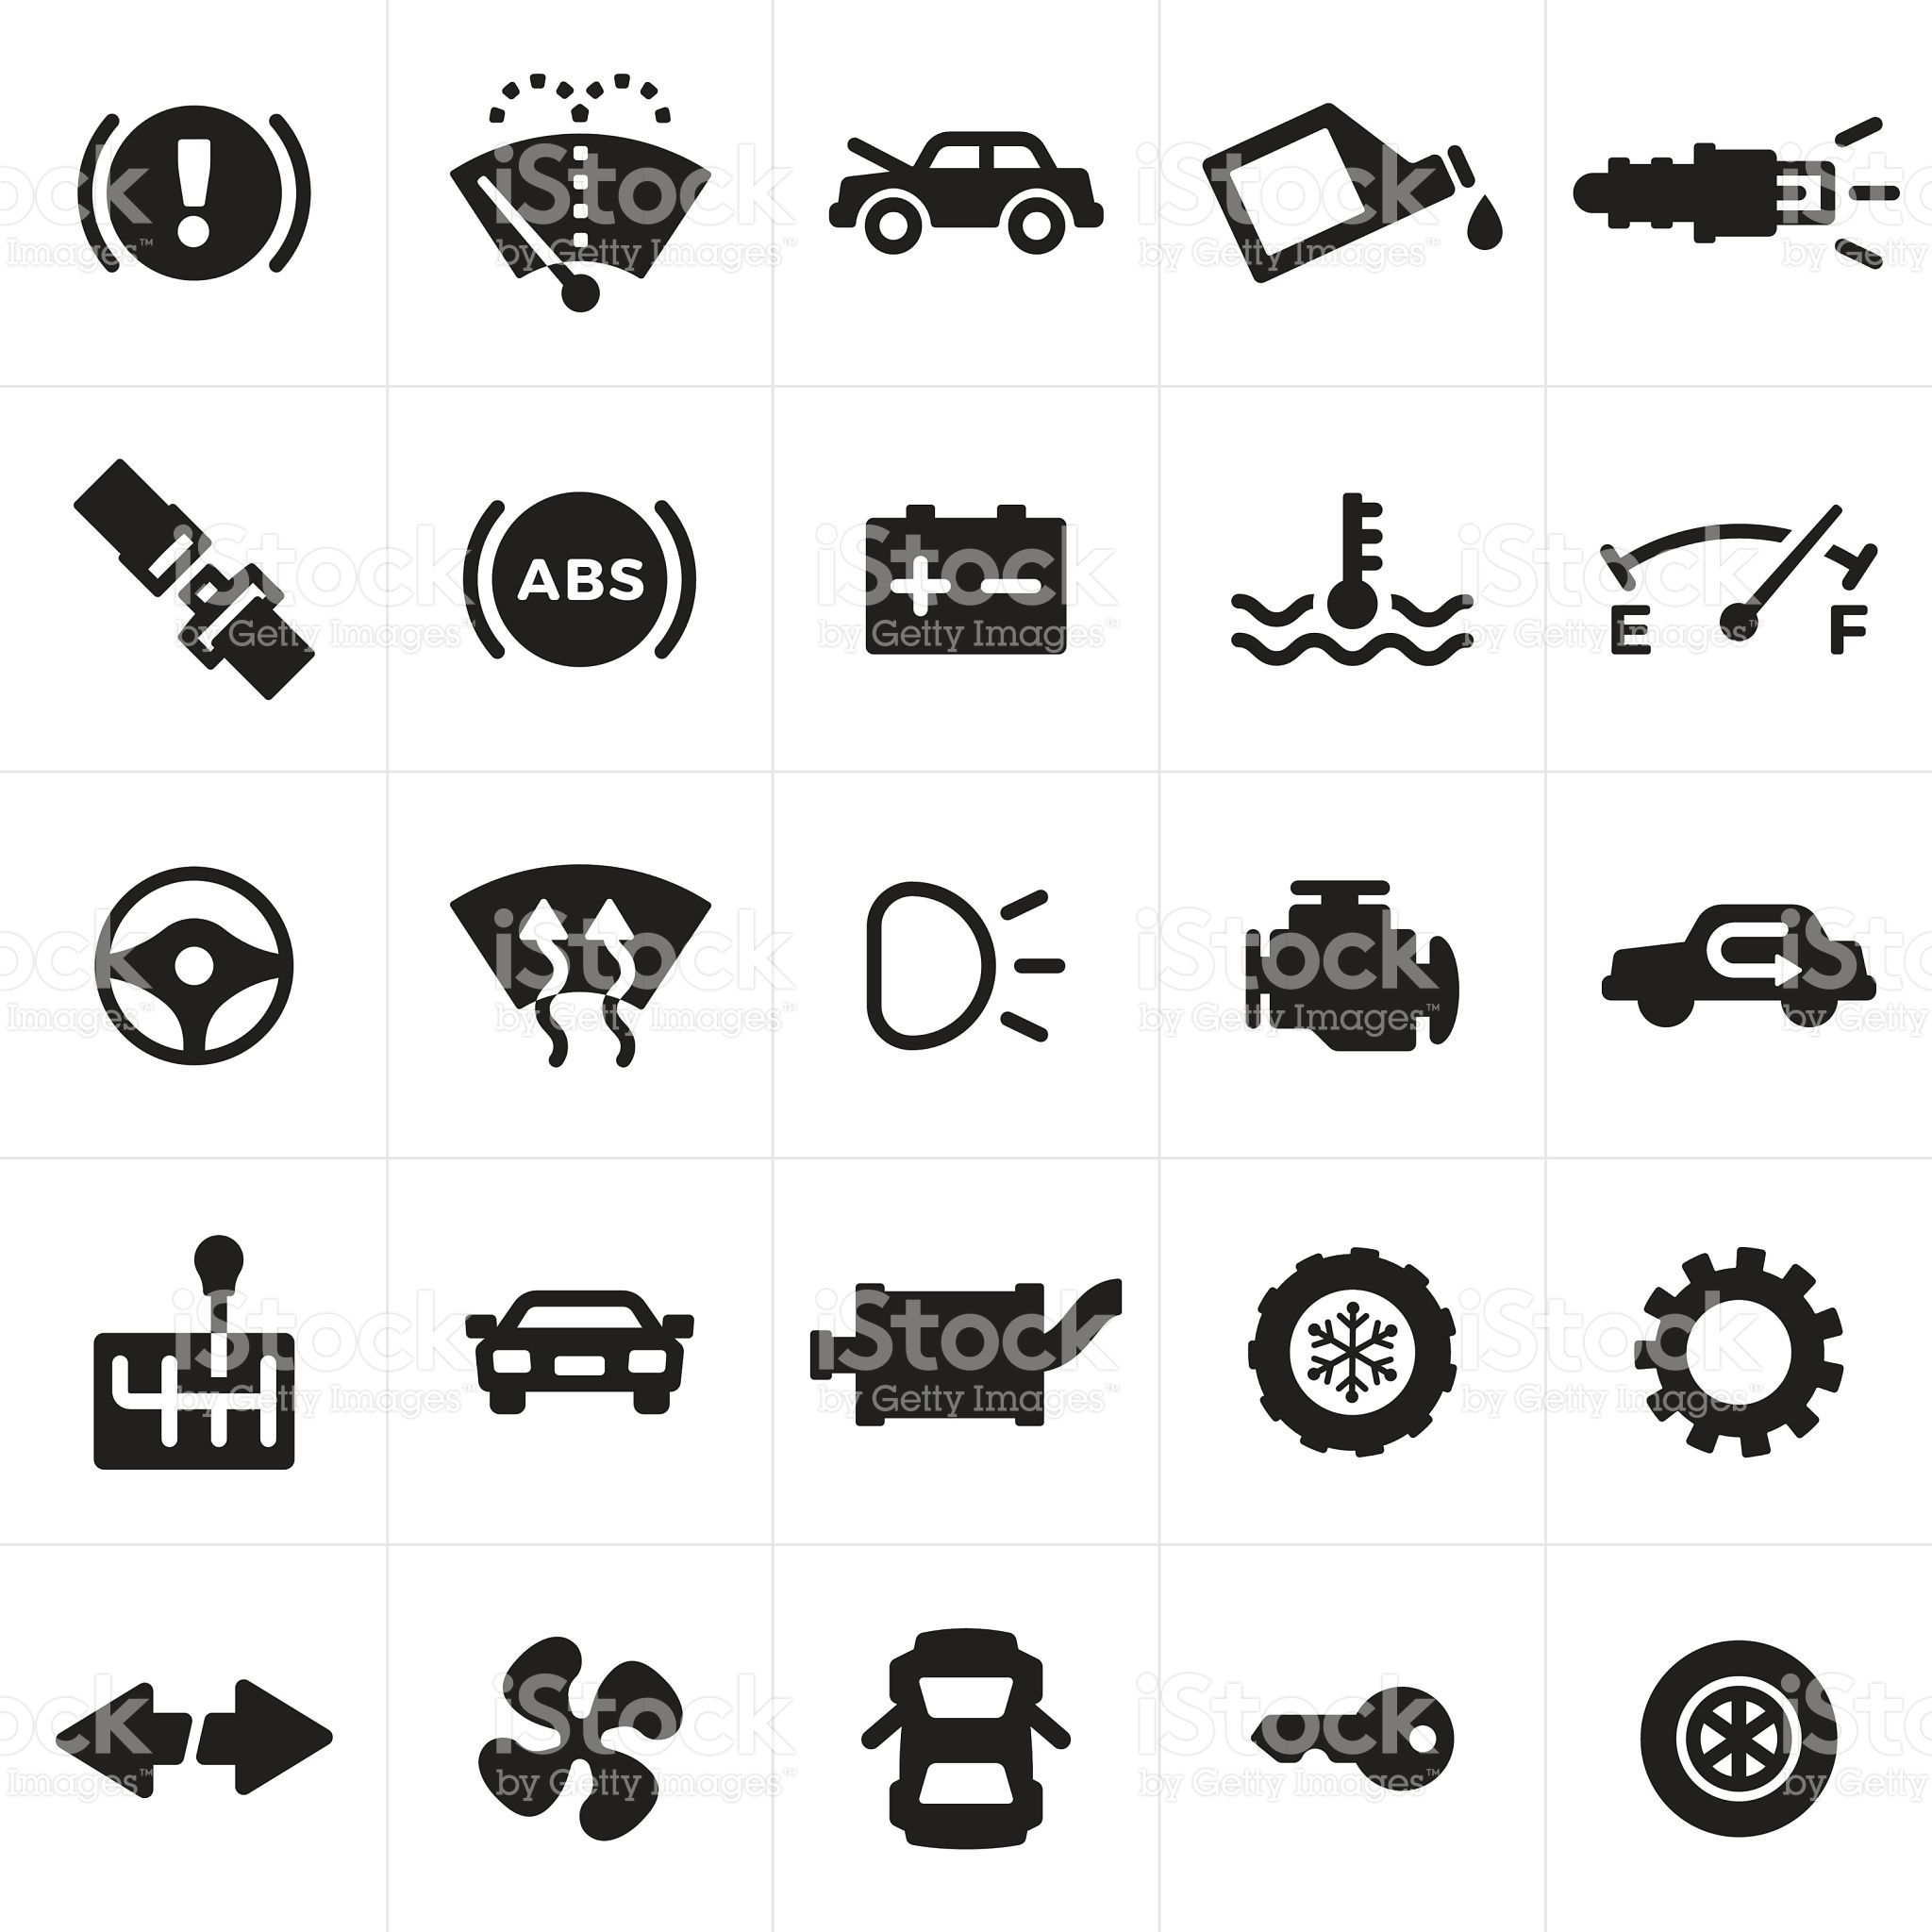 Symbols For Cars Images Meaning Of This Symbol